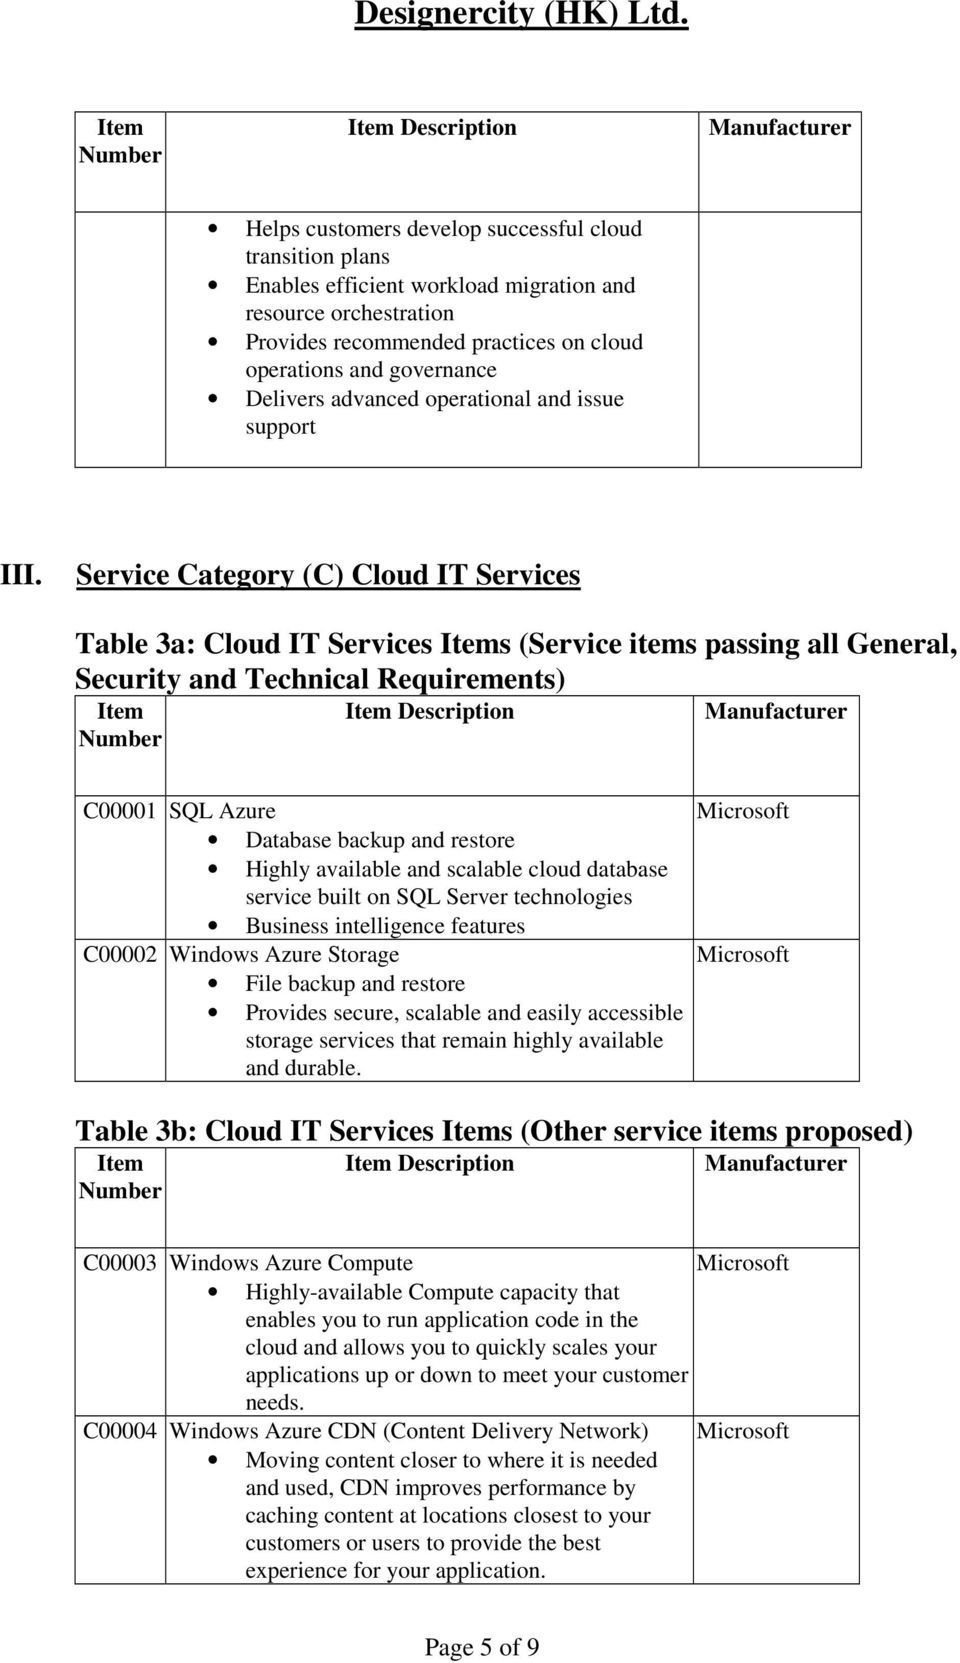 Service Category (C) Cloud IT Services Table 3a: Cloud IT Services s (Service items passing all General, Security and Technical Requirements) Description C00001 SQL Azure Database backup and restore